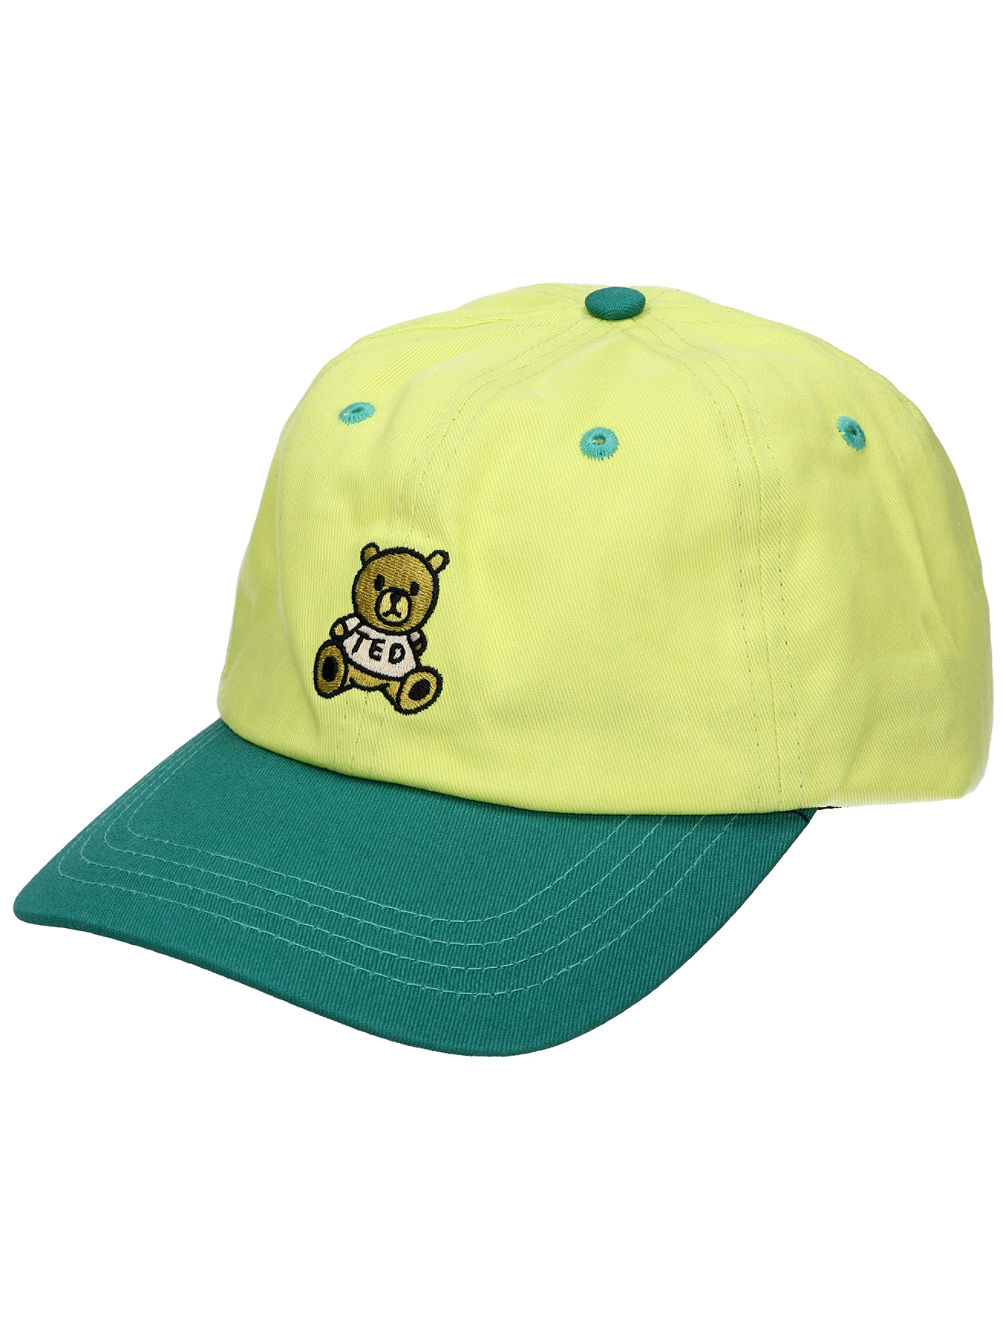 Ted Yellow Cap